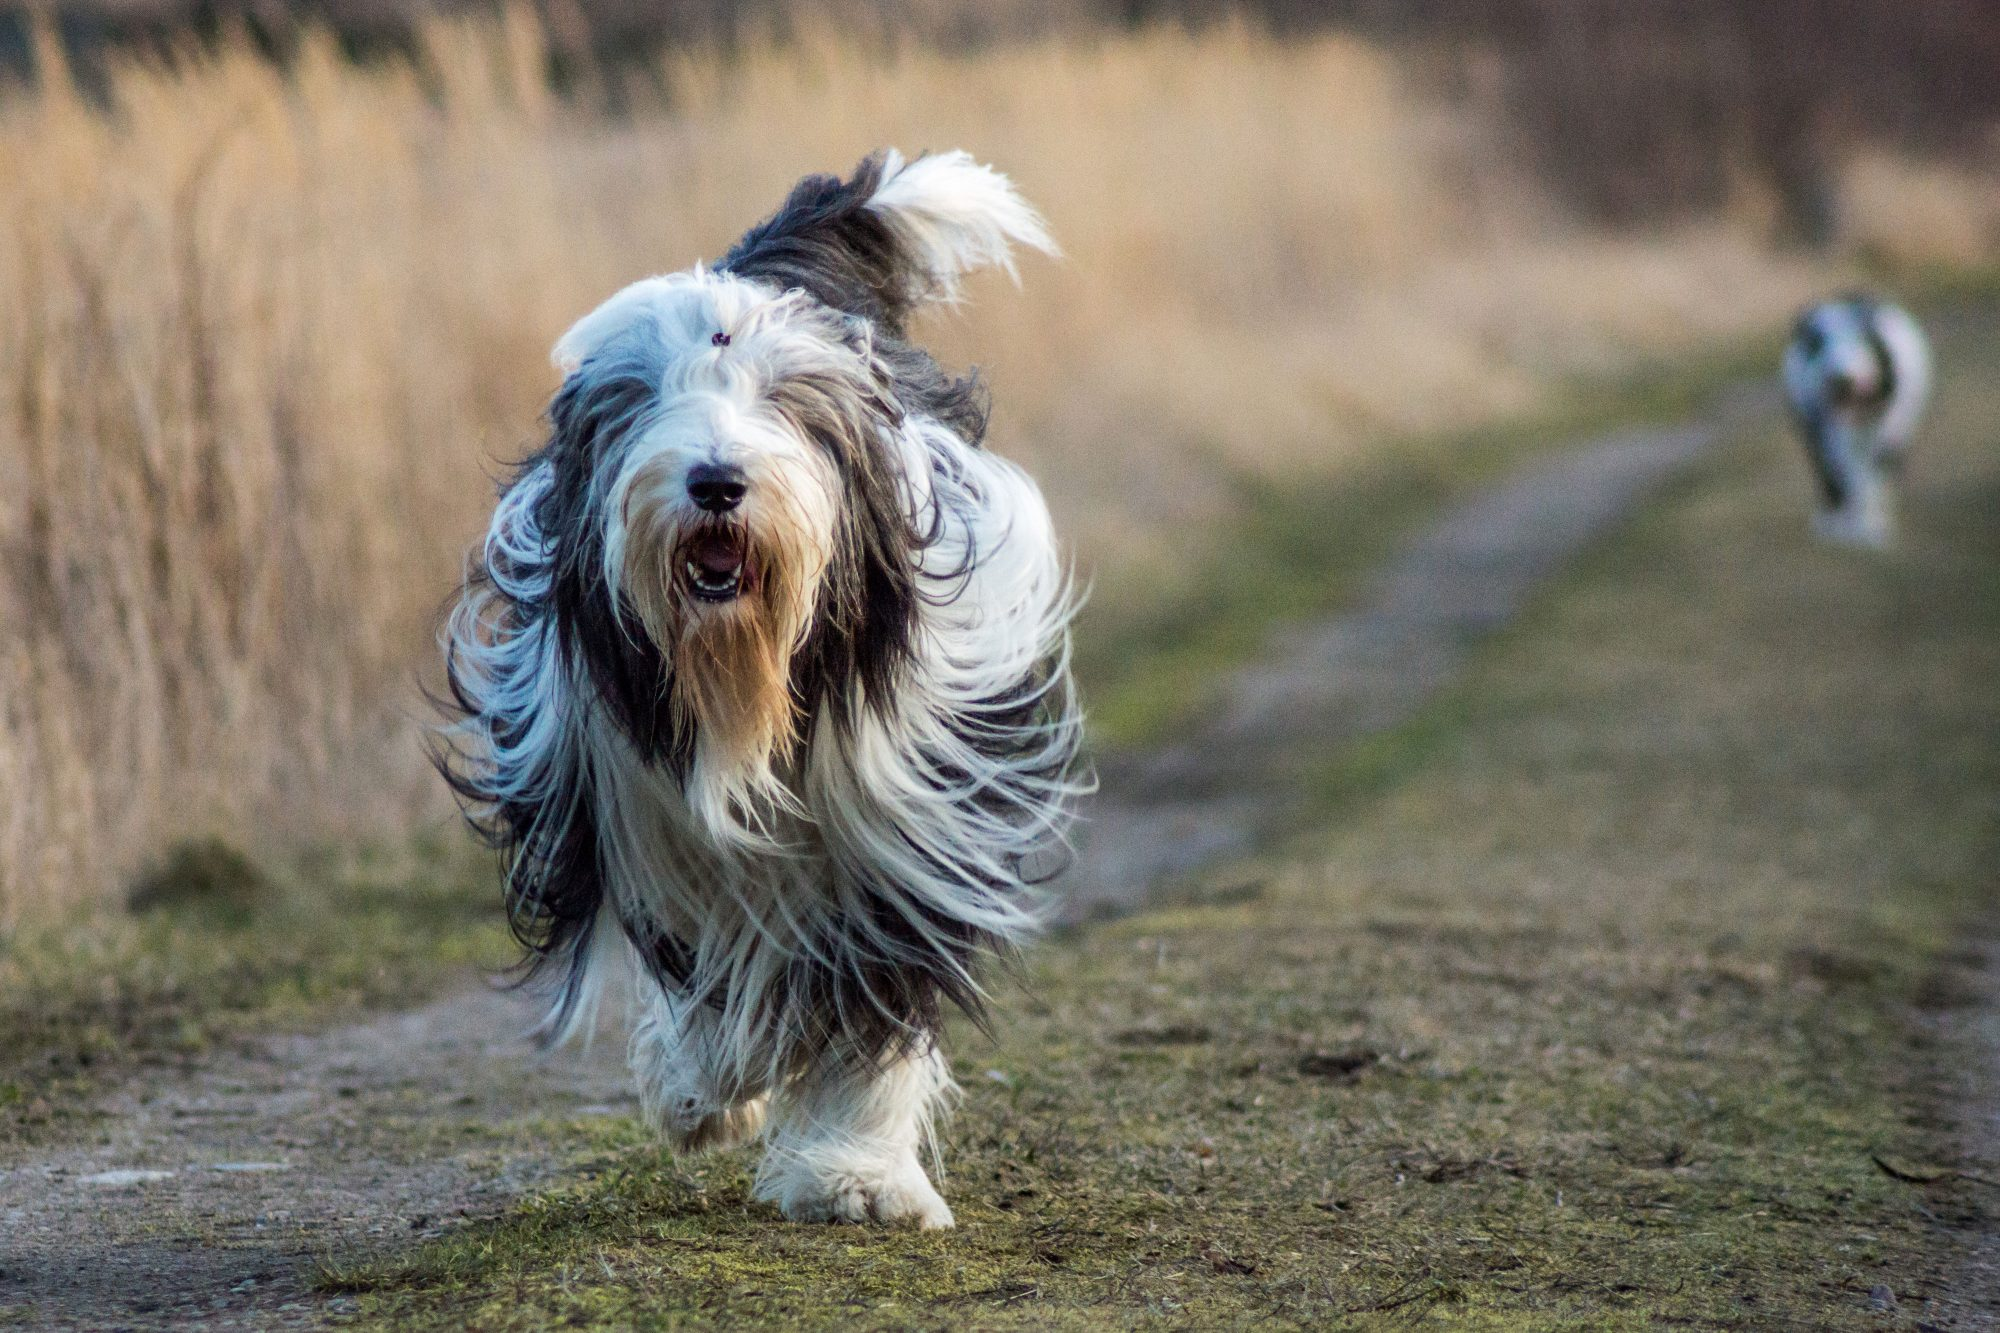 Bearded Collie Dog Running Down Dirt Road